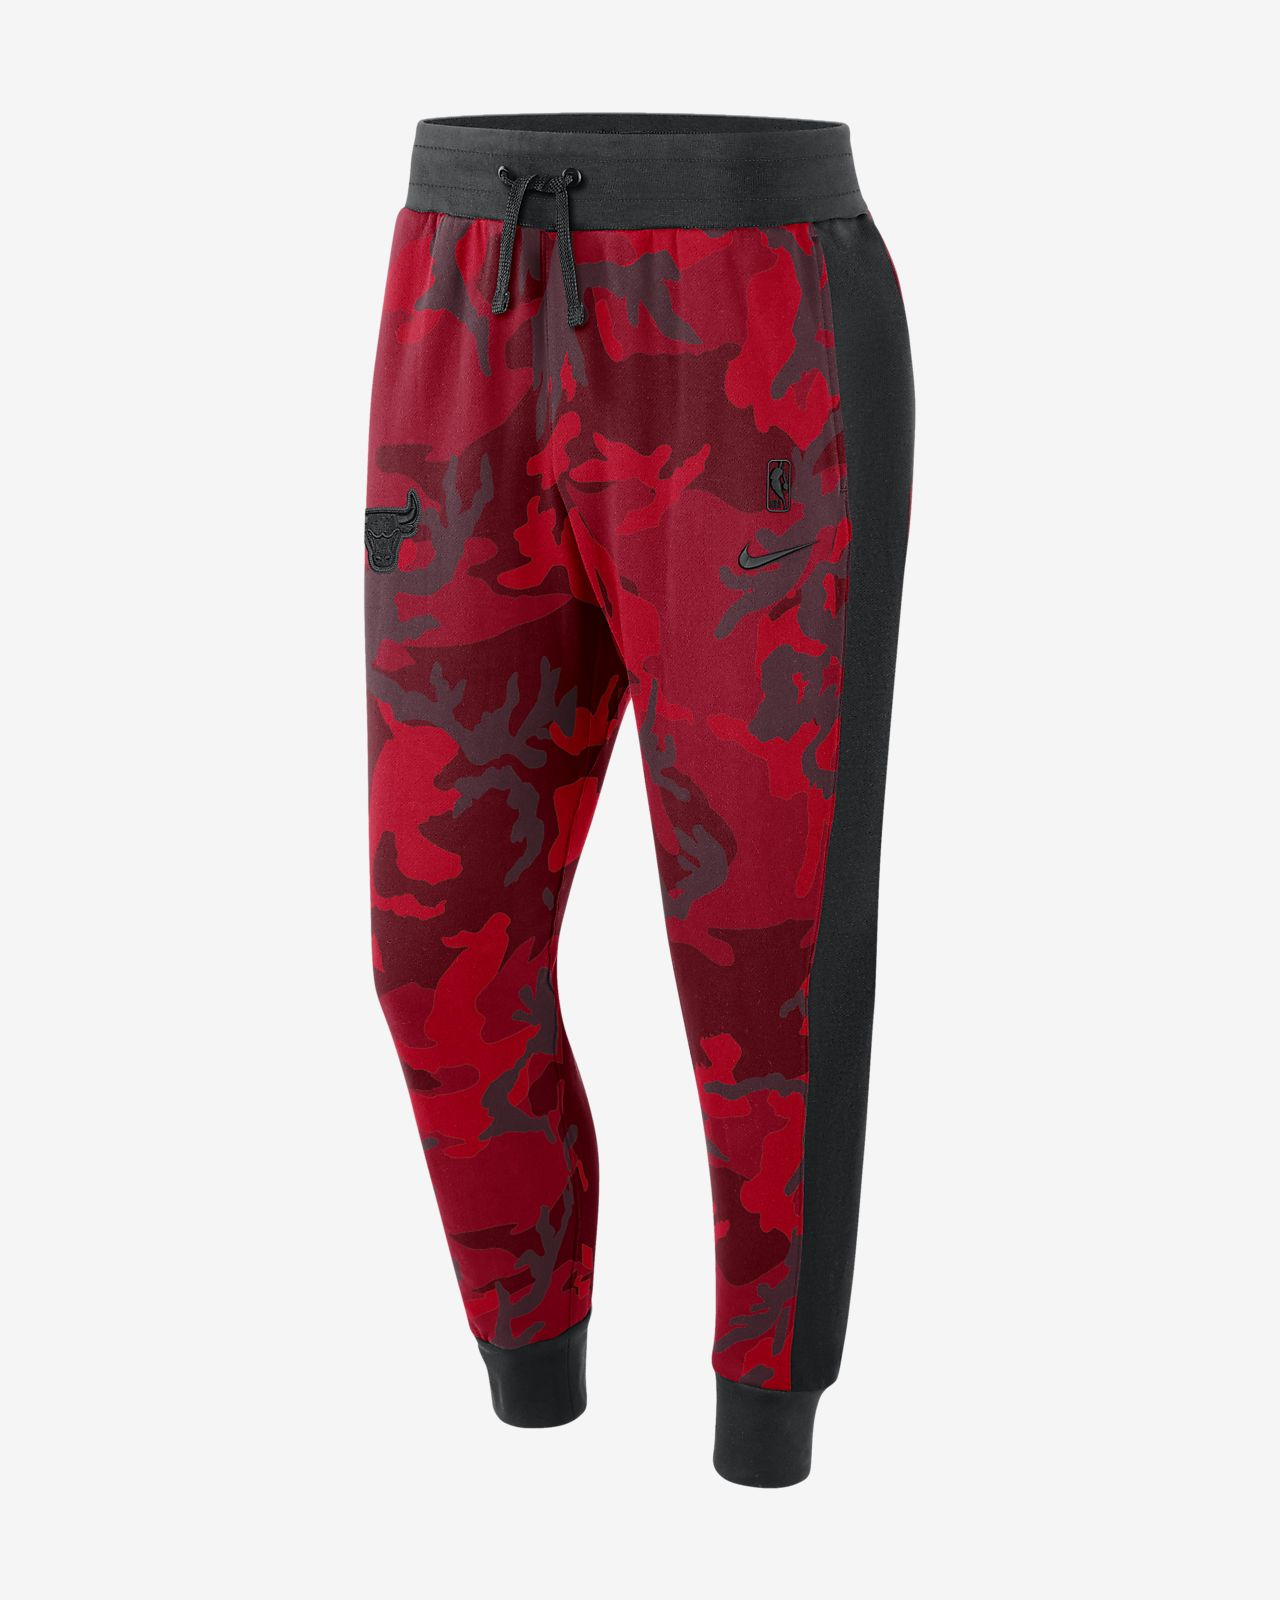 Chicago Bulls Nike Men's NBA Trousers